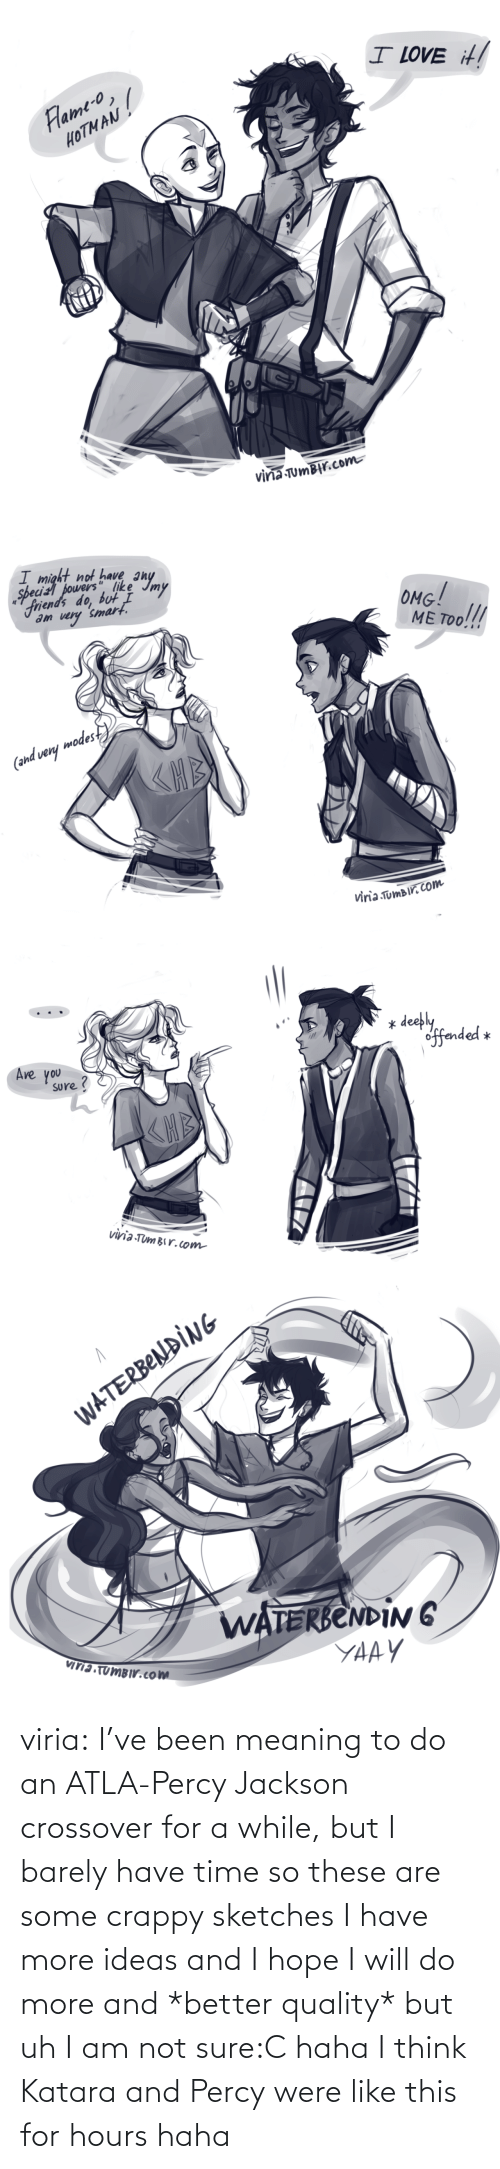 These: viria:  I've been meaning to do an ATLA-Percy Jackson crossover for a while, but I barely have time so these are some crappy sketches I have more ideas and I hope I will do more and *better quality* but uh I am not sure:C haha I think Katara and Percy were like this for hours haha